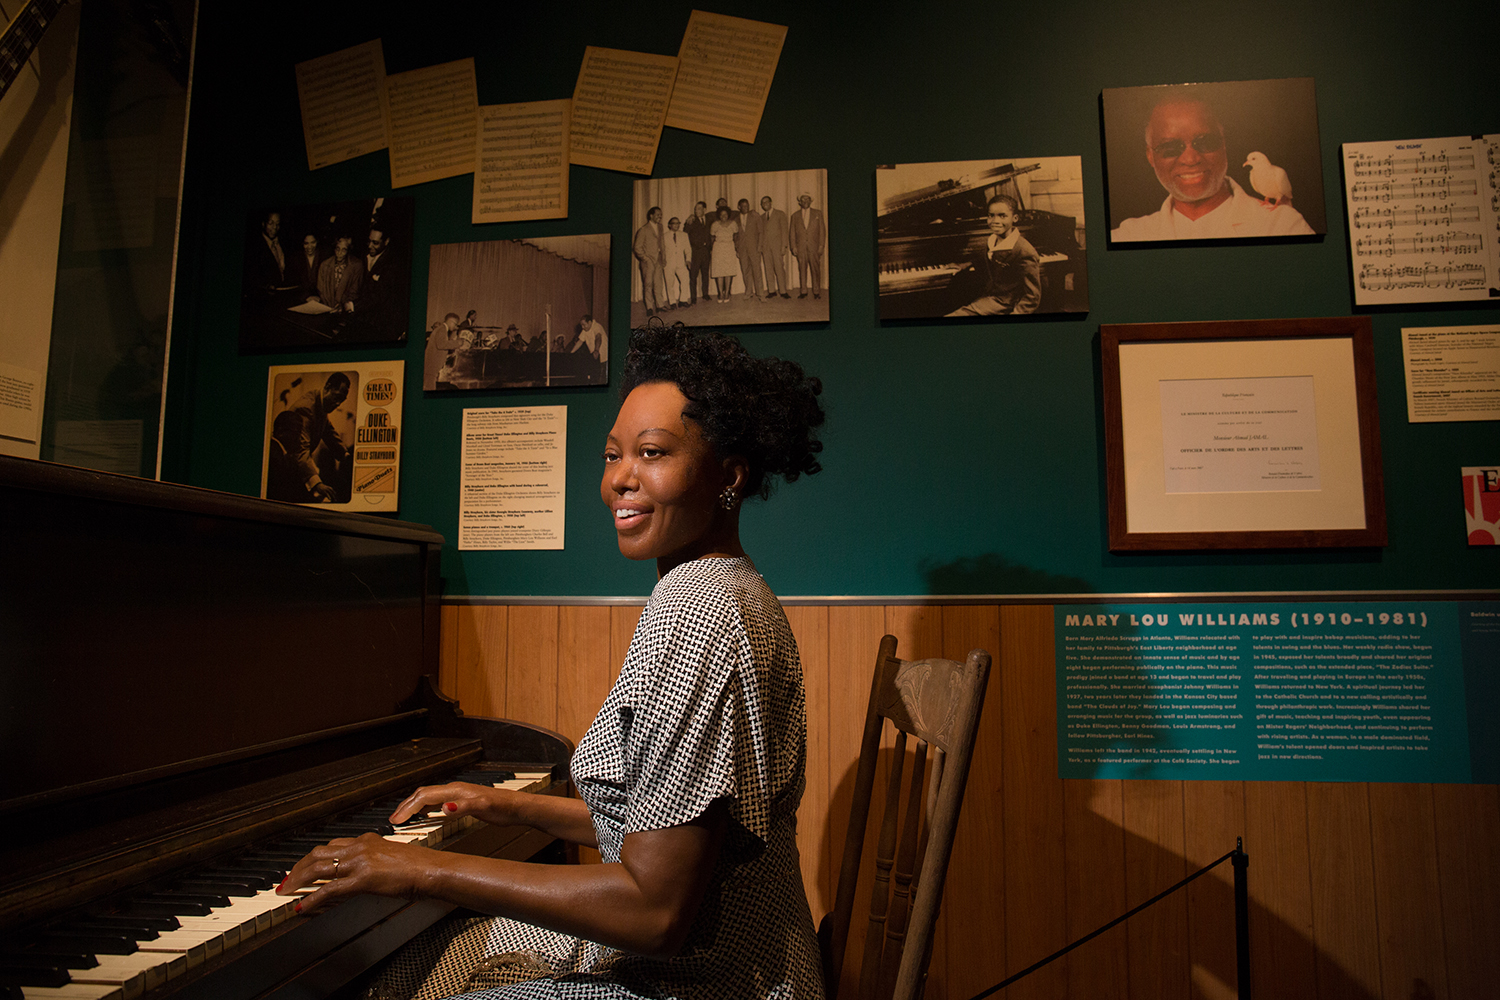 Mary Lou Williams | Pittsburgh: A Tradition of Innovation | Heinz History Center